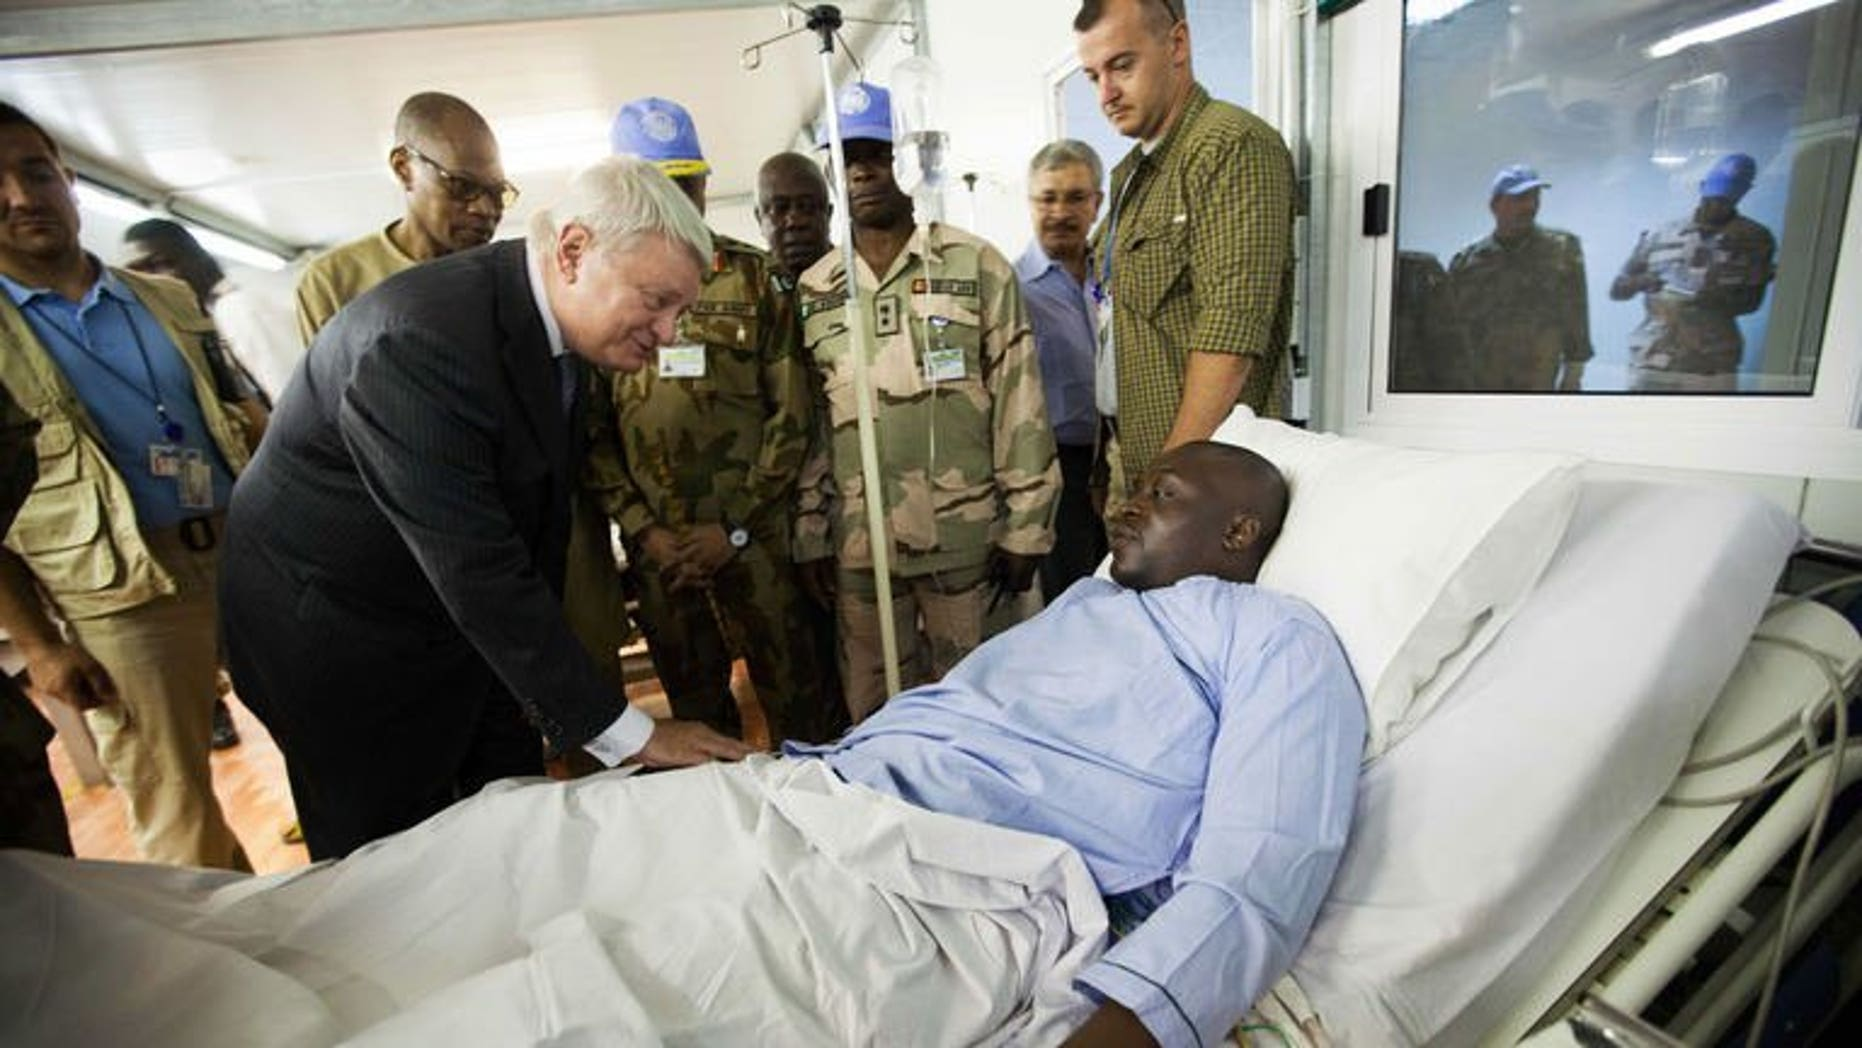 A photo released by UNAMID shows UN peacekeeping chief Herv?? Ladsous, meeting injured peacekeepers in Nyala, South Darfur, on July 4, 2013. An aid worker has been killed during fighting in the largest city of Sudan's troubled Darfur region, a humanitarian source says.